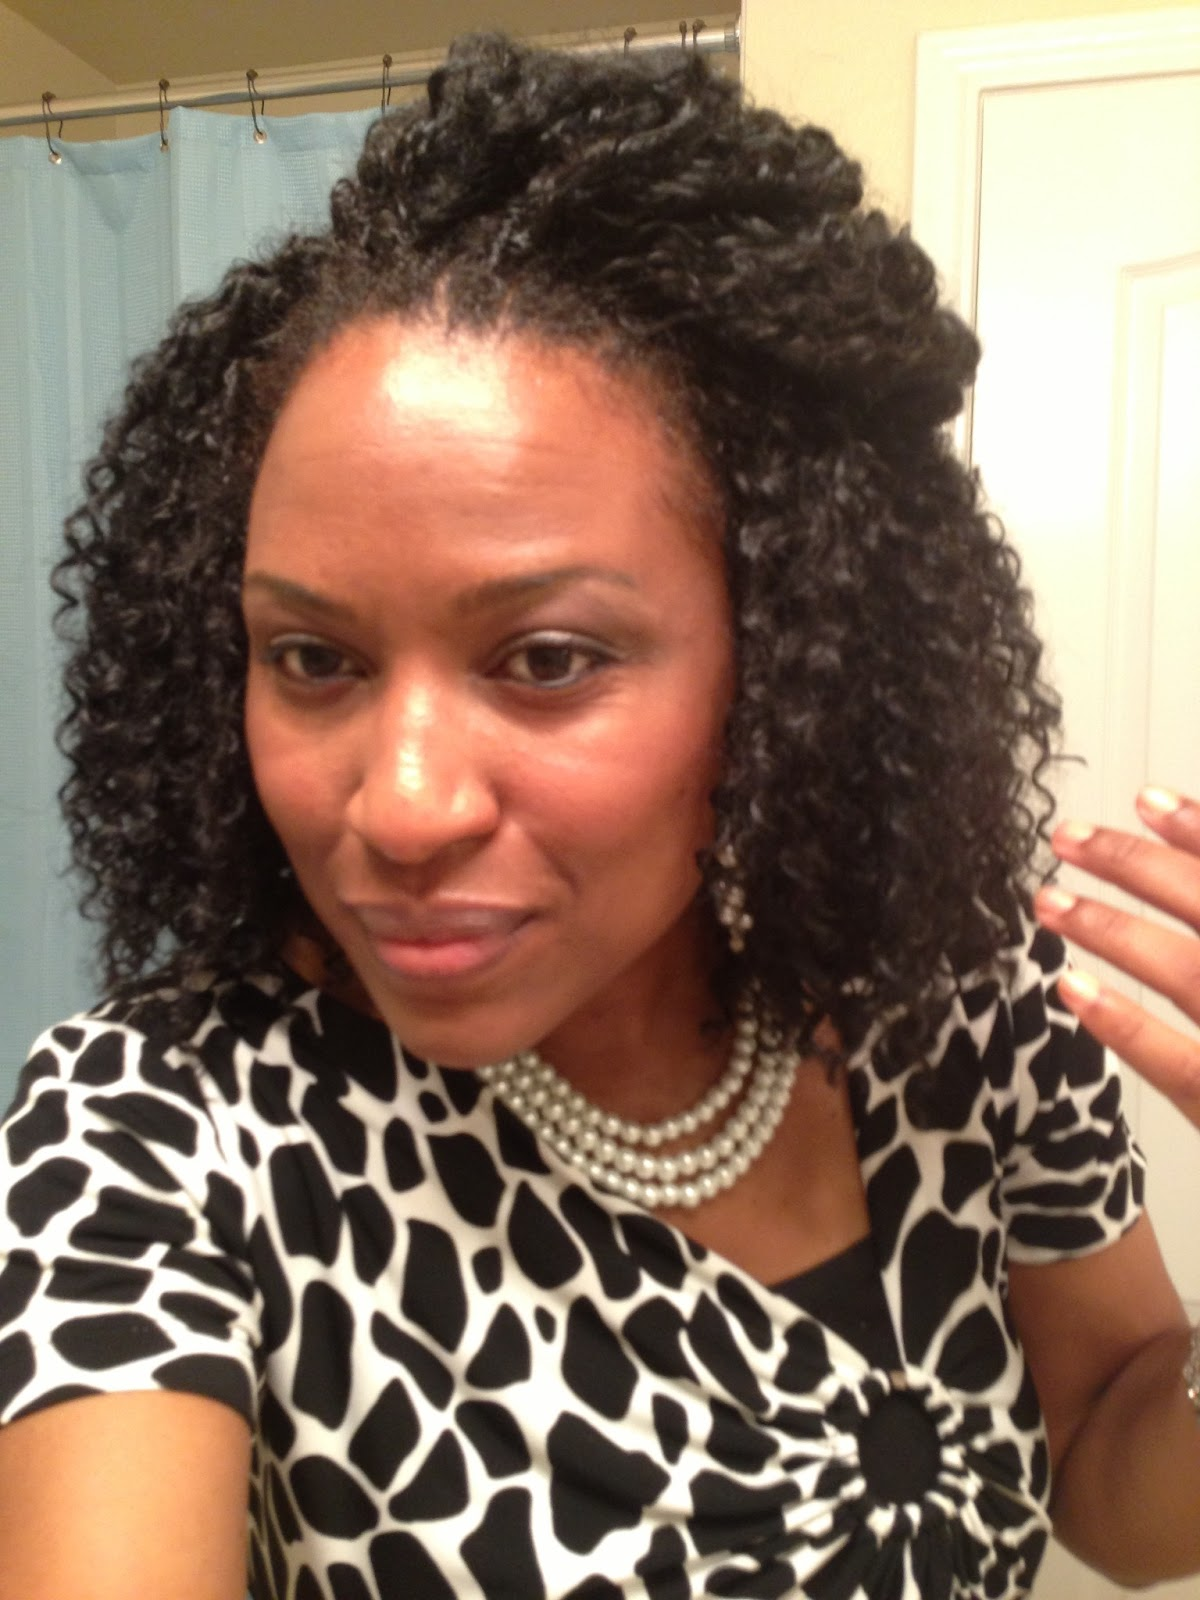 ... HAIR: Get Maximum Wear out of your Crochet Braids:My 8 week Update